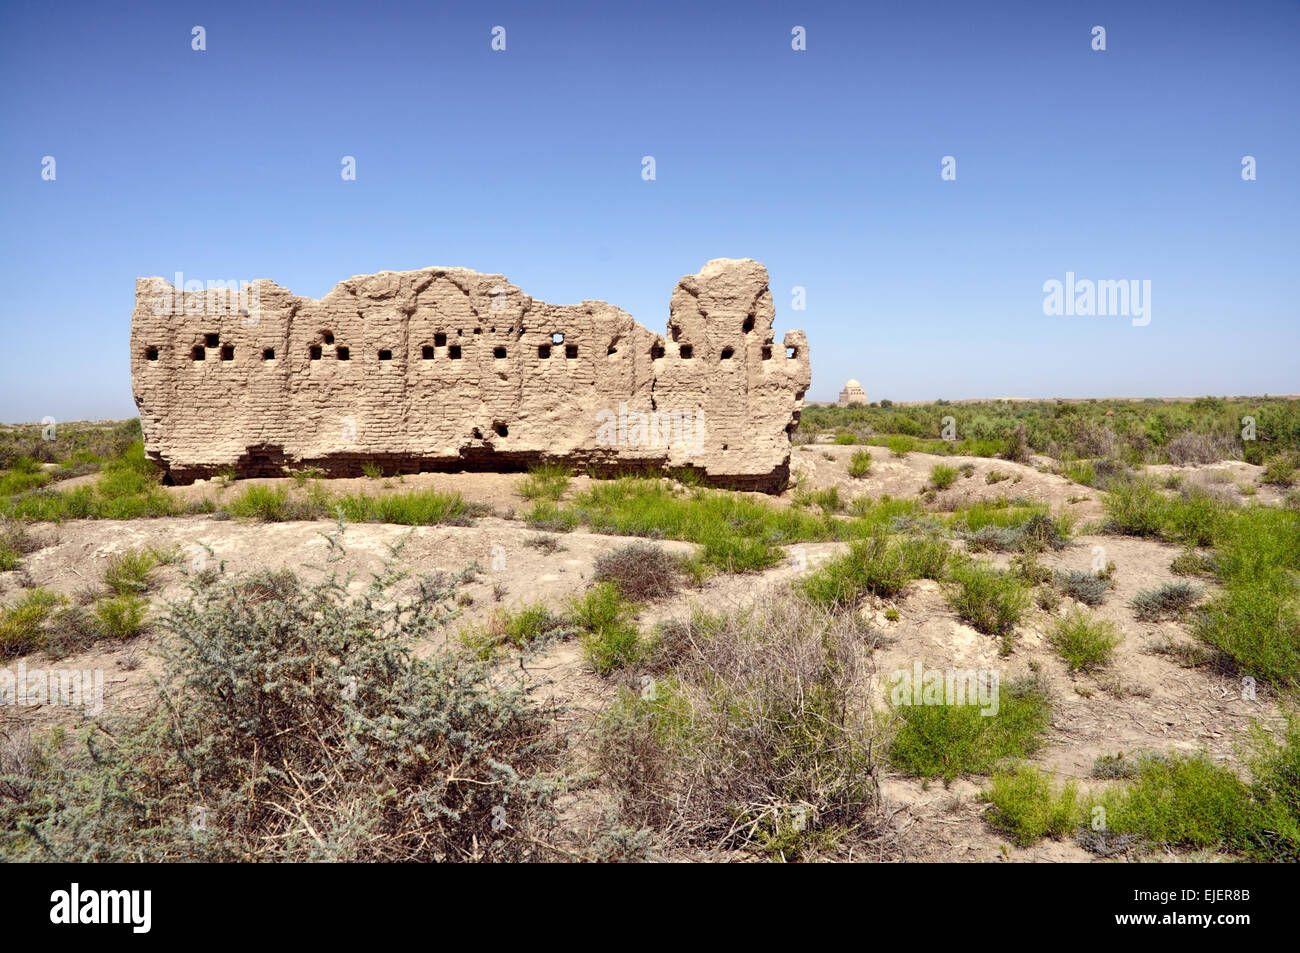 Large temple in desert near Merv, Turkmenistan - Stock Image